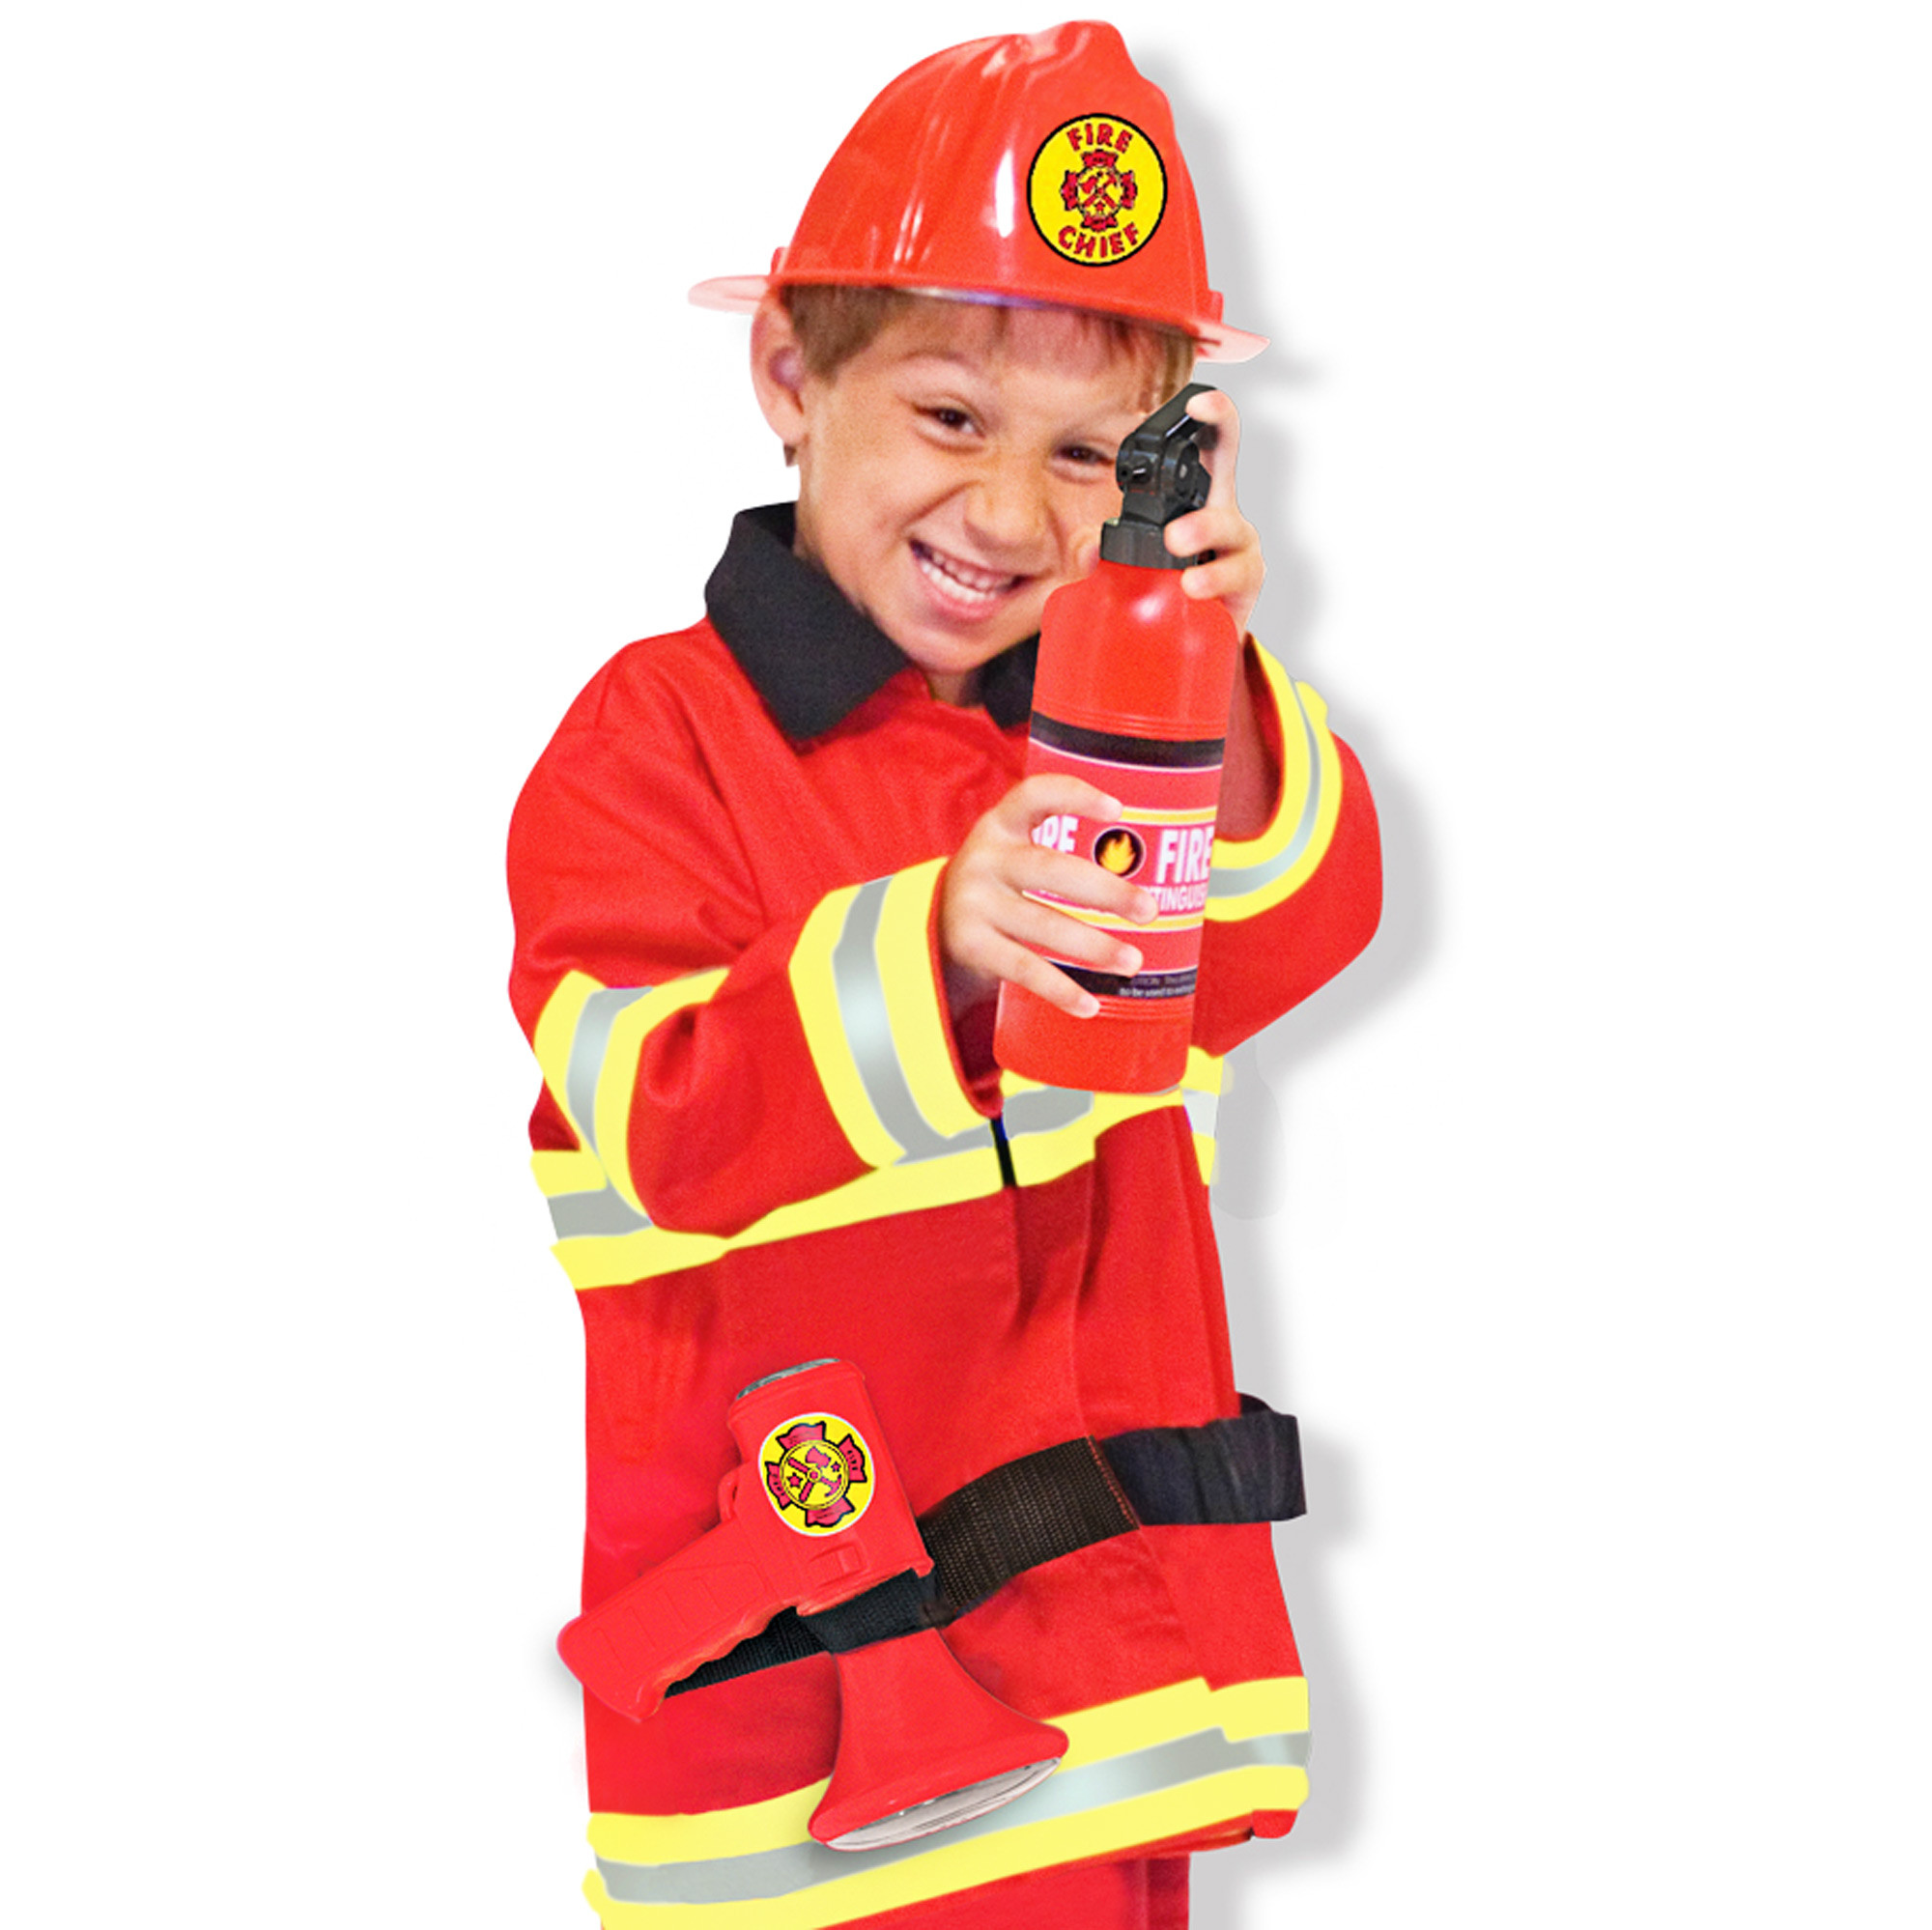 Fire Chief Dramtic Play Costume